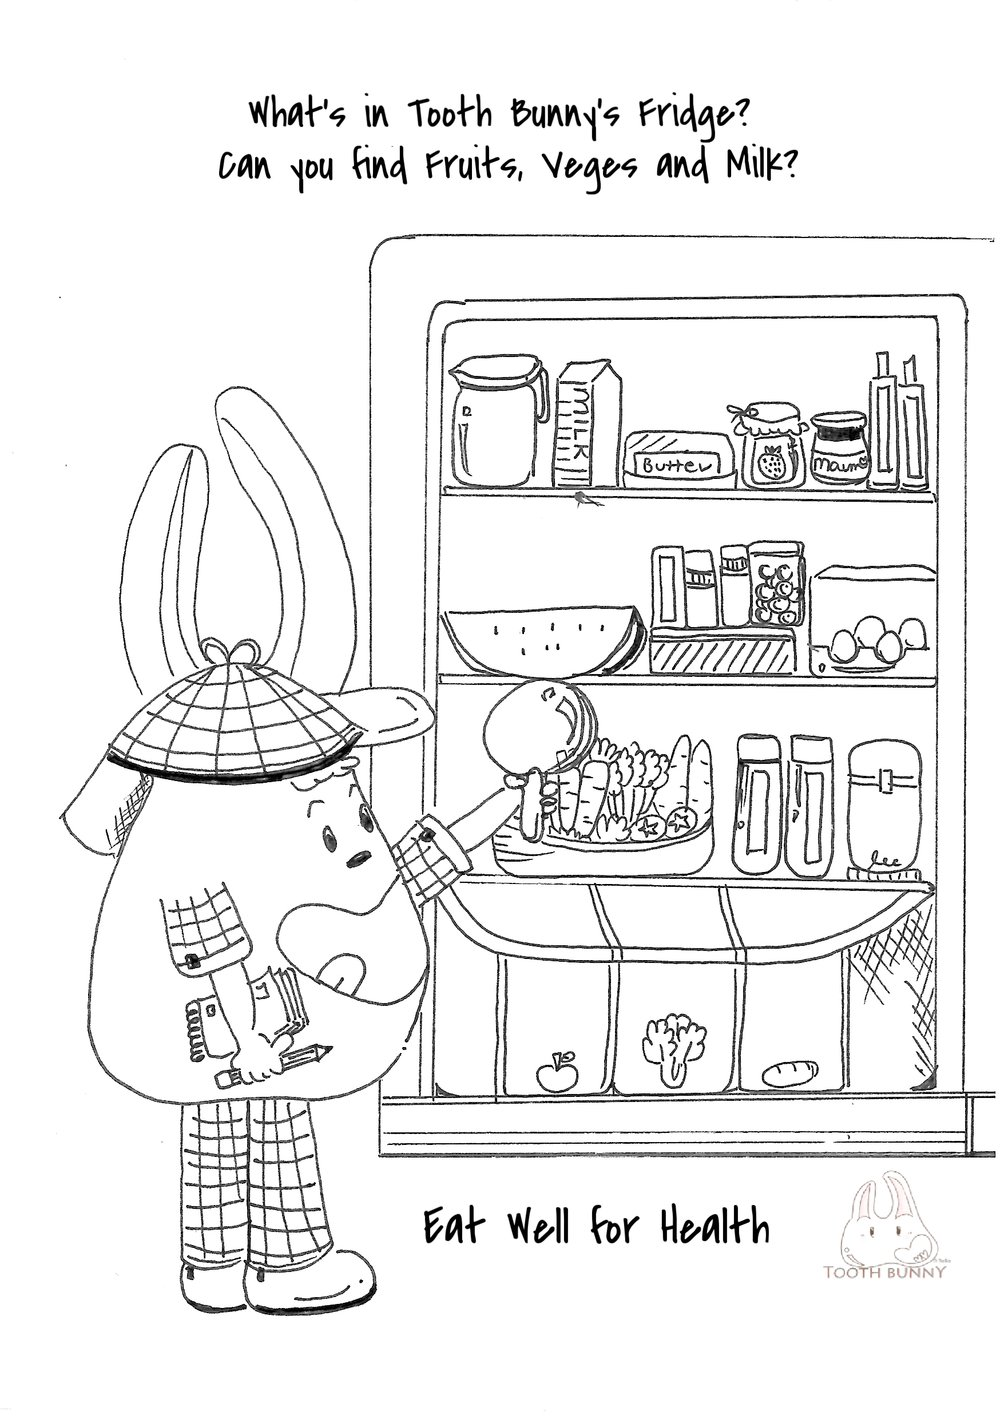 Colour In and Find Fruits, Veges and Milk in Tooth Bunny's Fridge